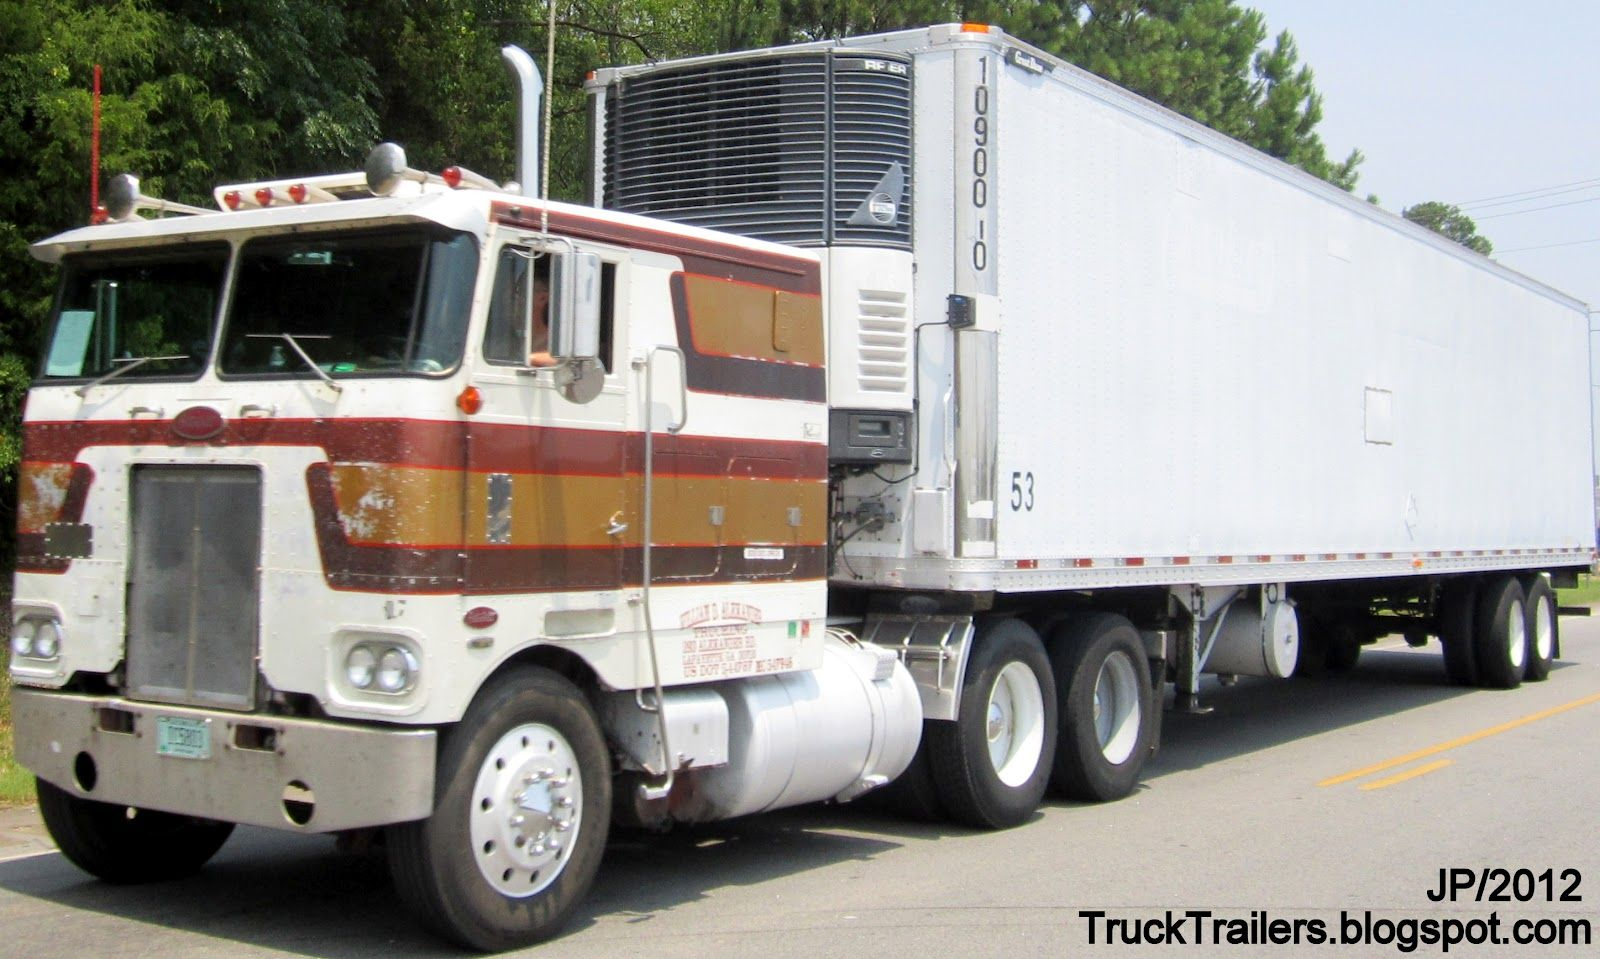 This Freightliner Semi Truck with a custom sleeper transported ...